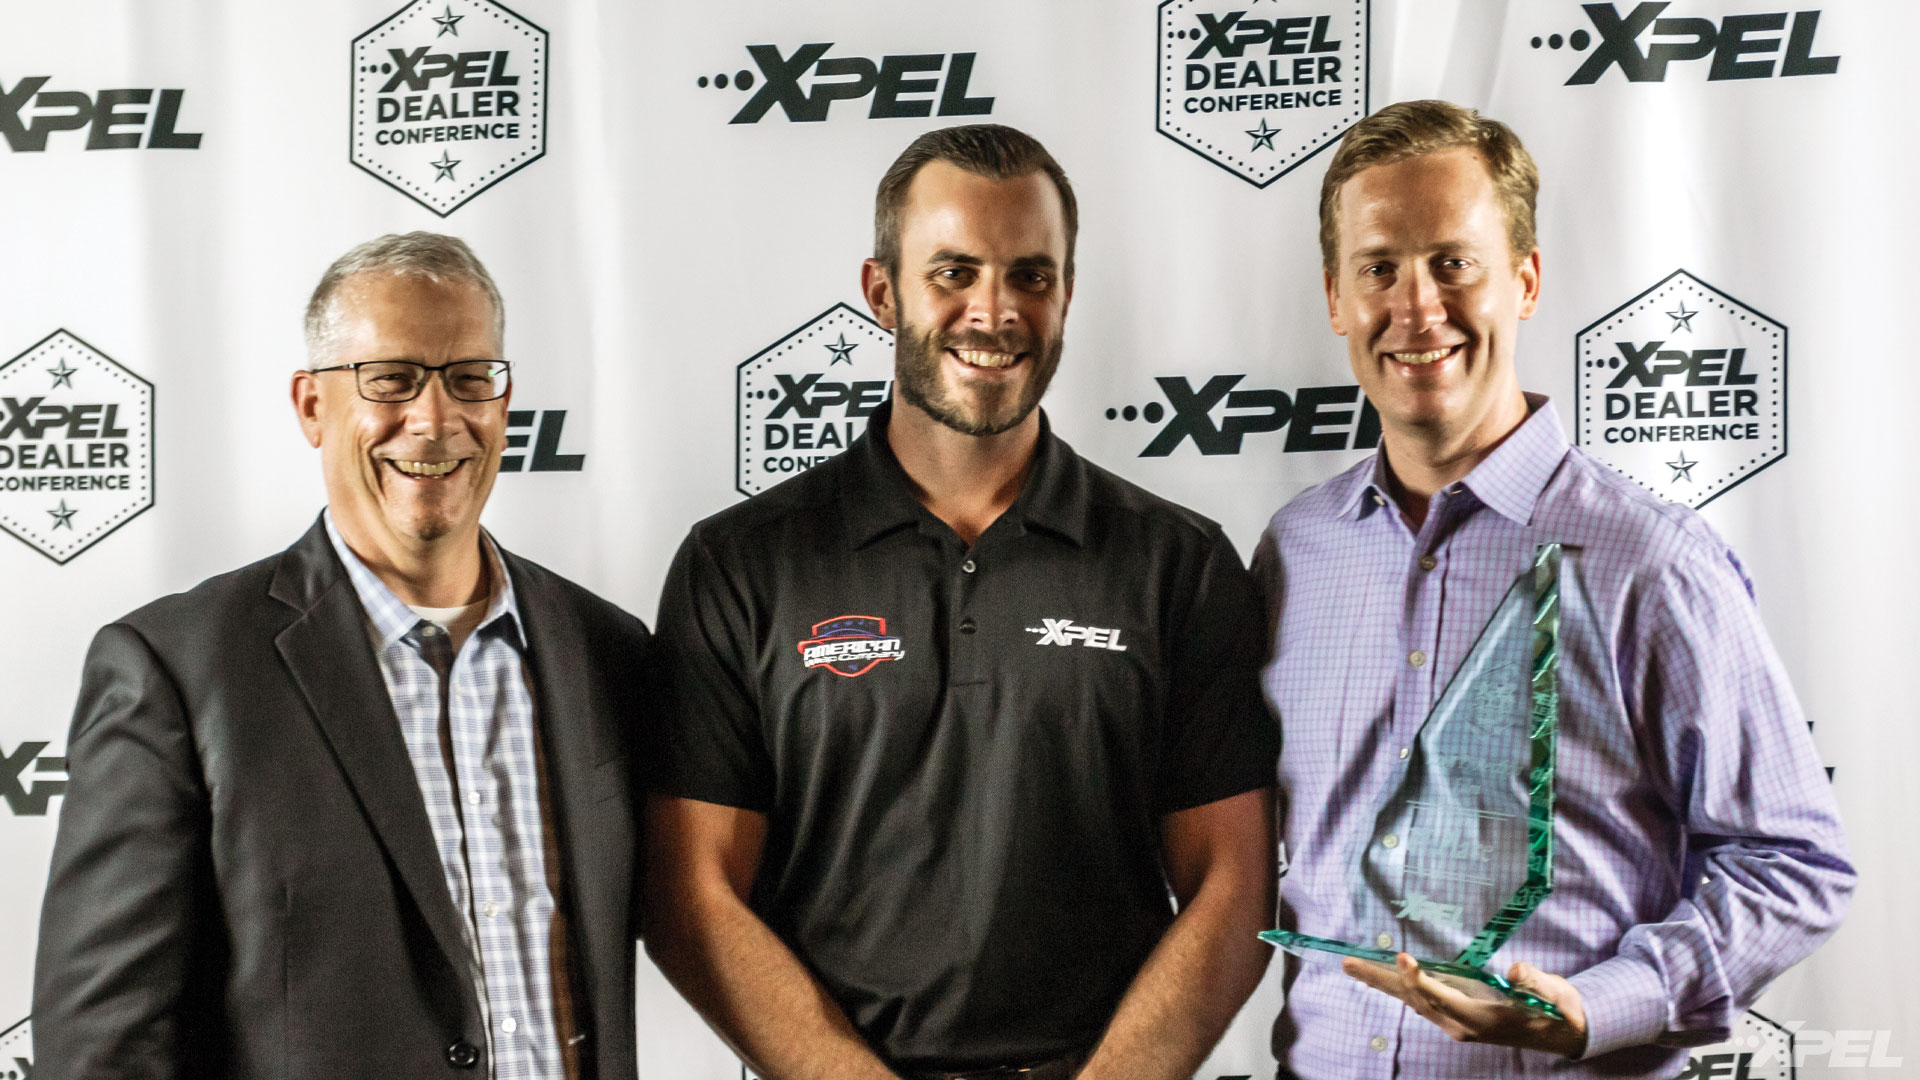 XPEL Dealer Conference 1st Place Paint Protection Film Winner: Tyler O'Hara of America Wrap Co.